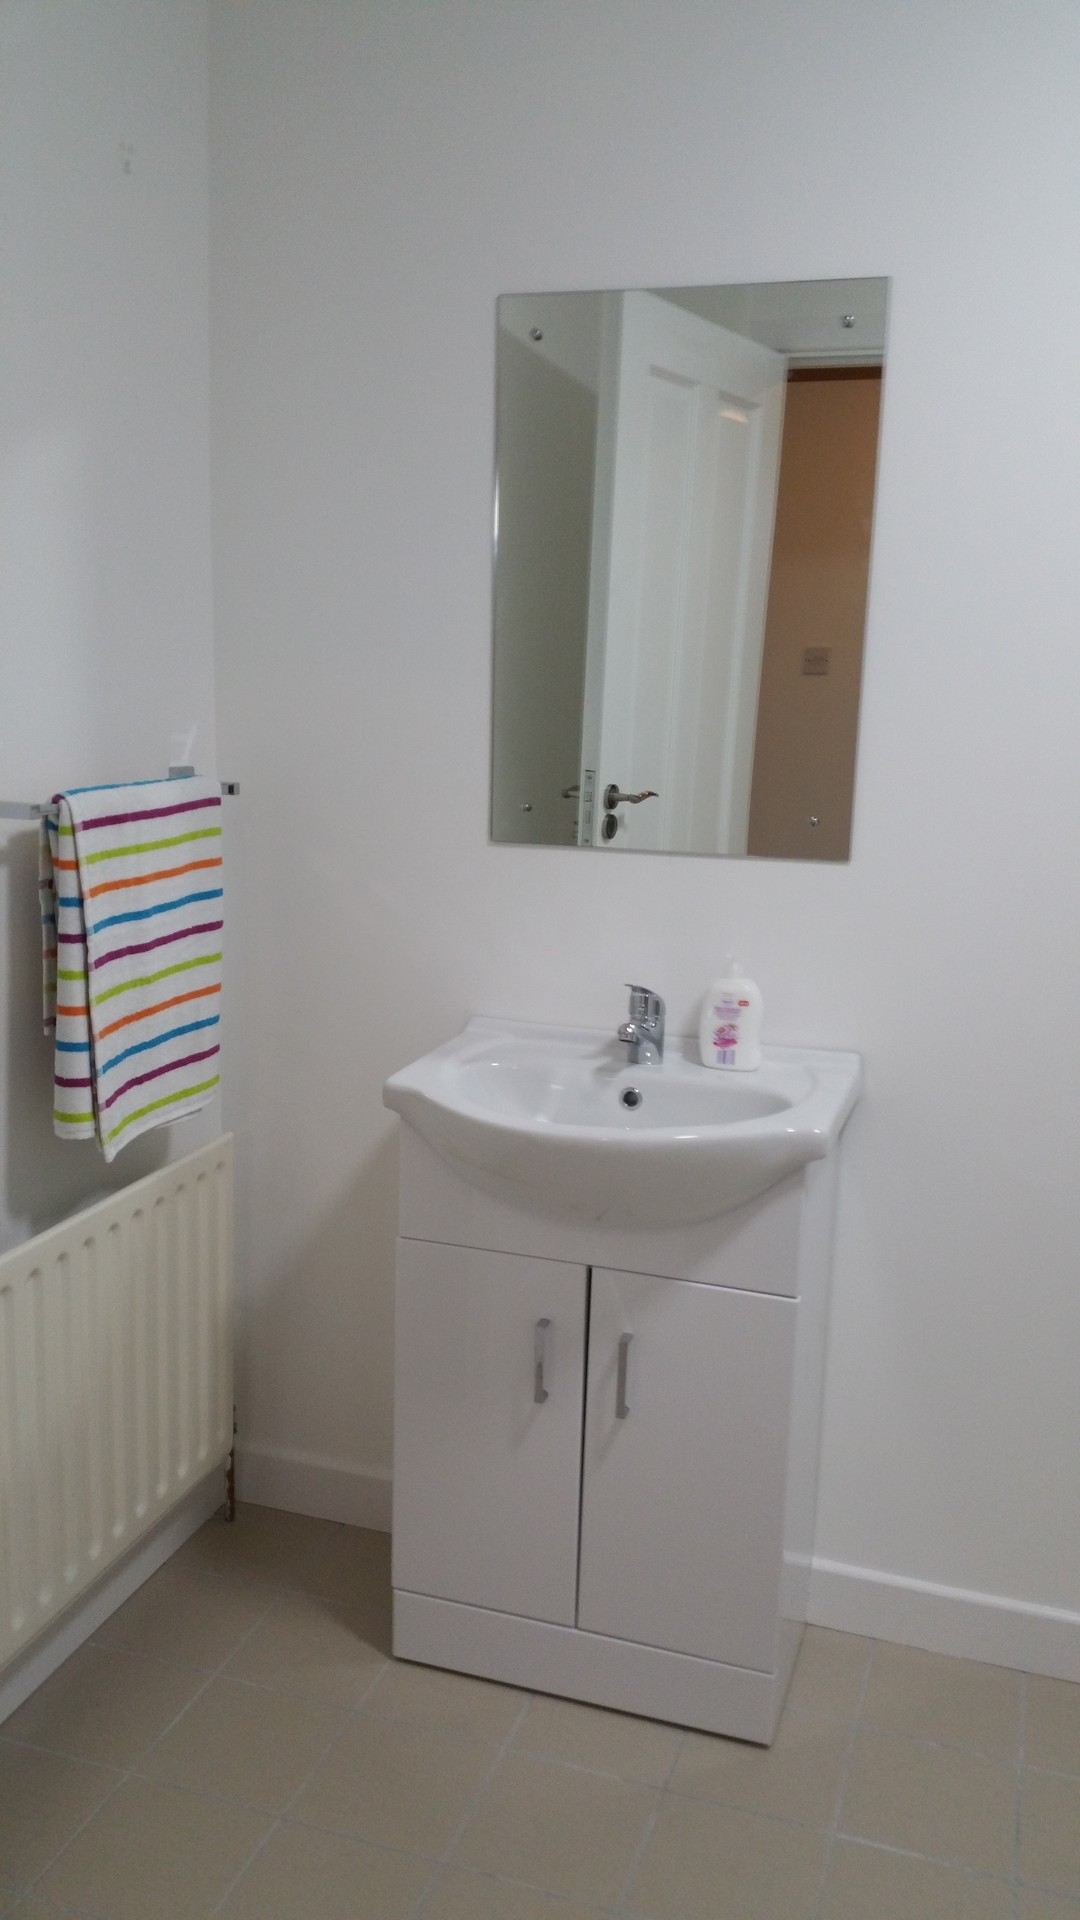 Bathroom Sinks Galway large house salthill galway | university dorm galway